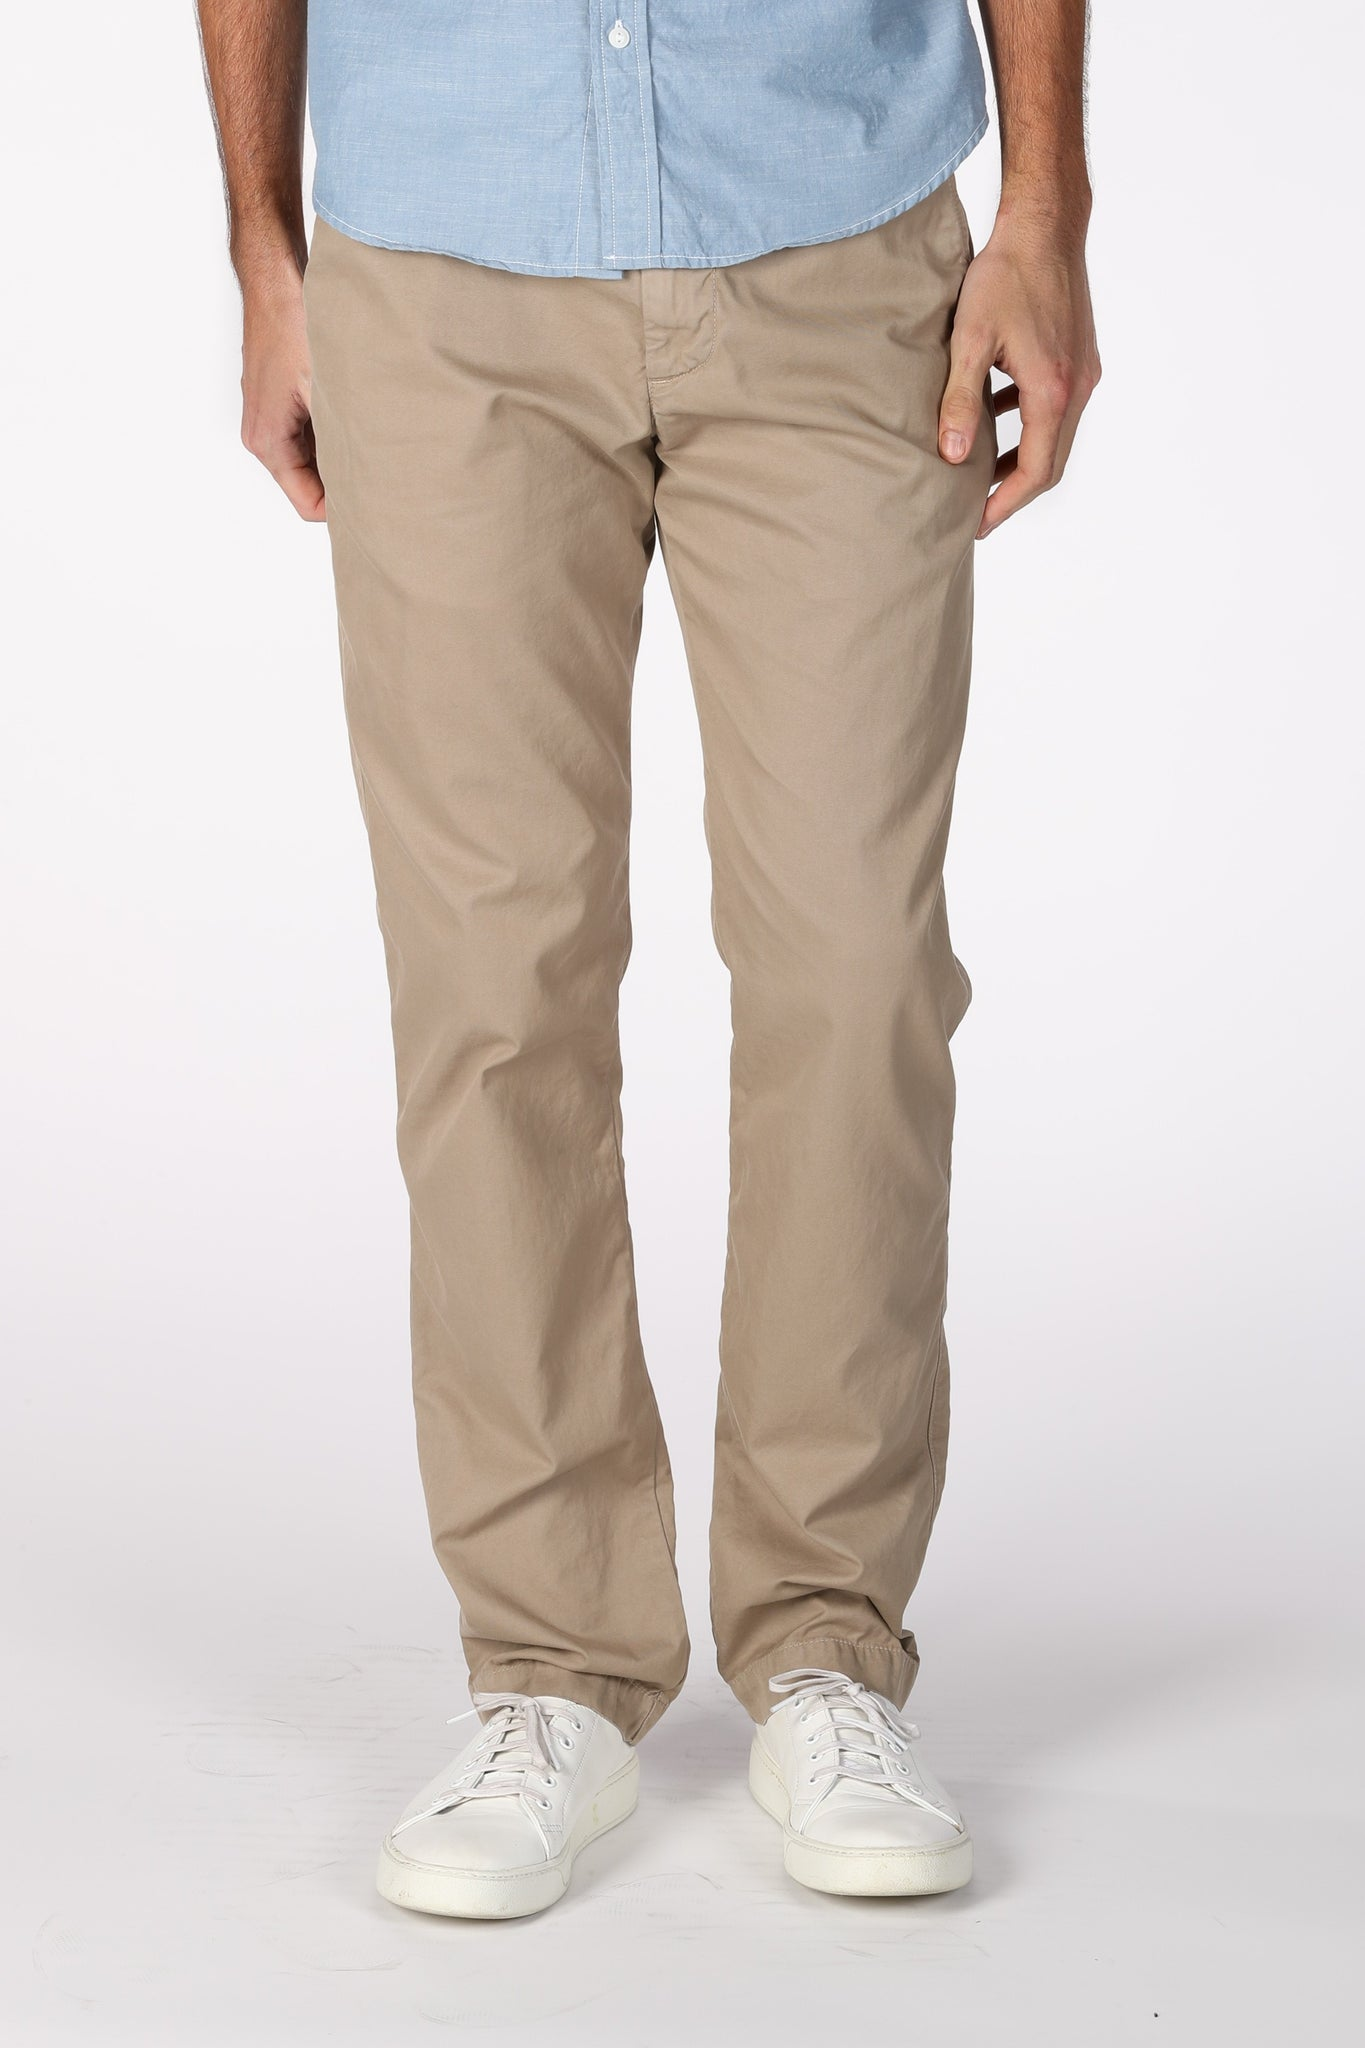 Save Khaki United Light Twill Trouser - Khaki